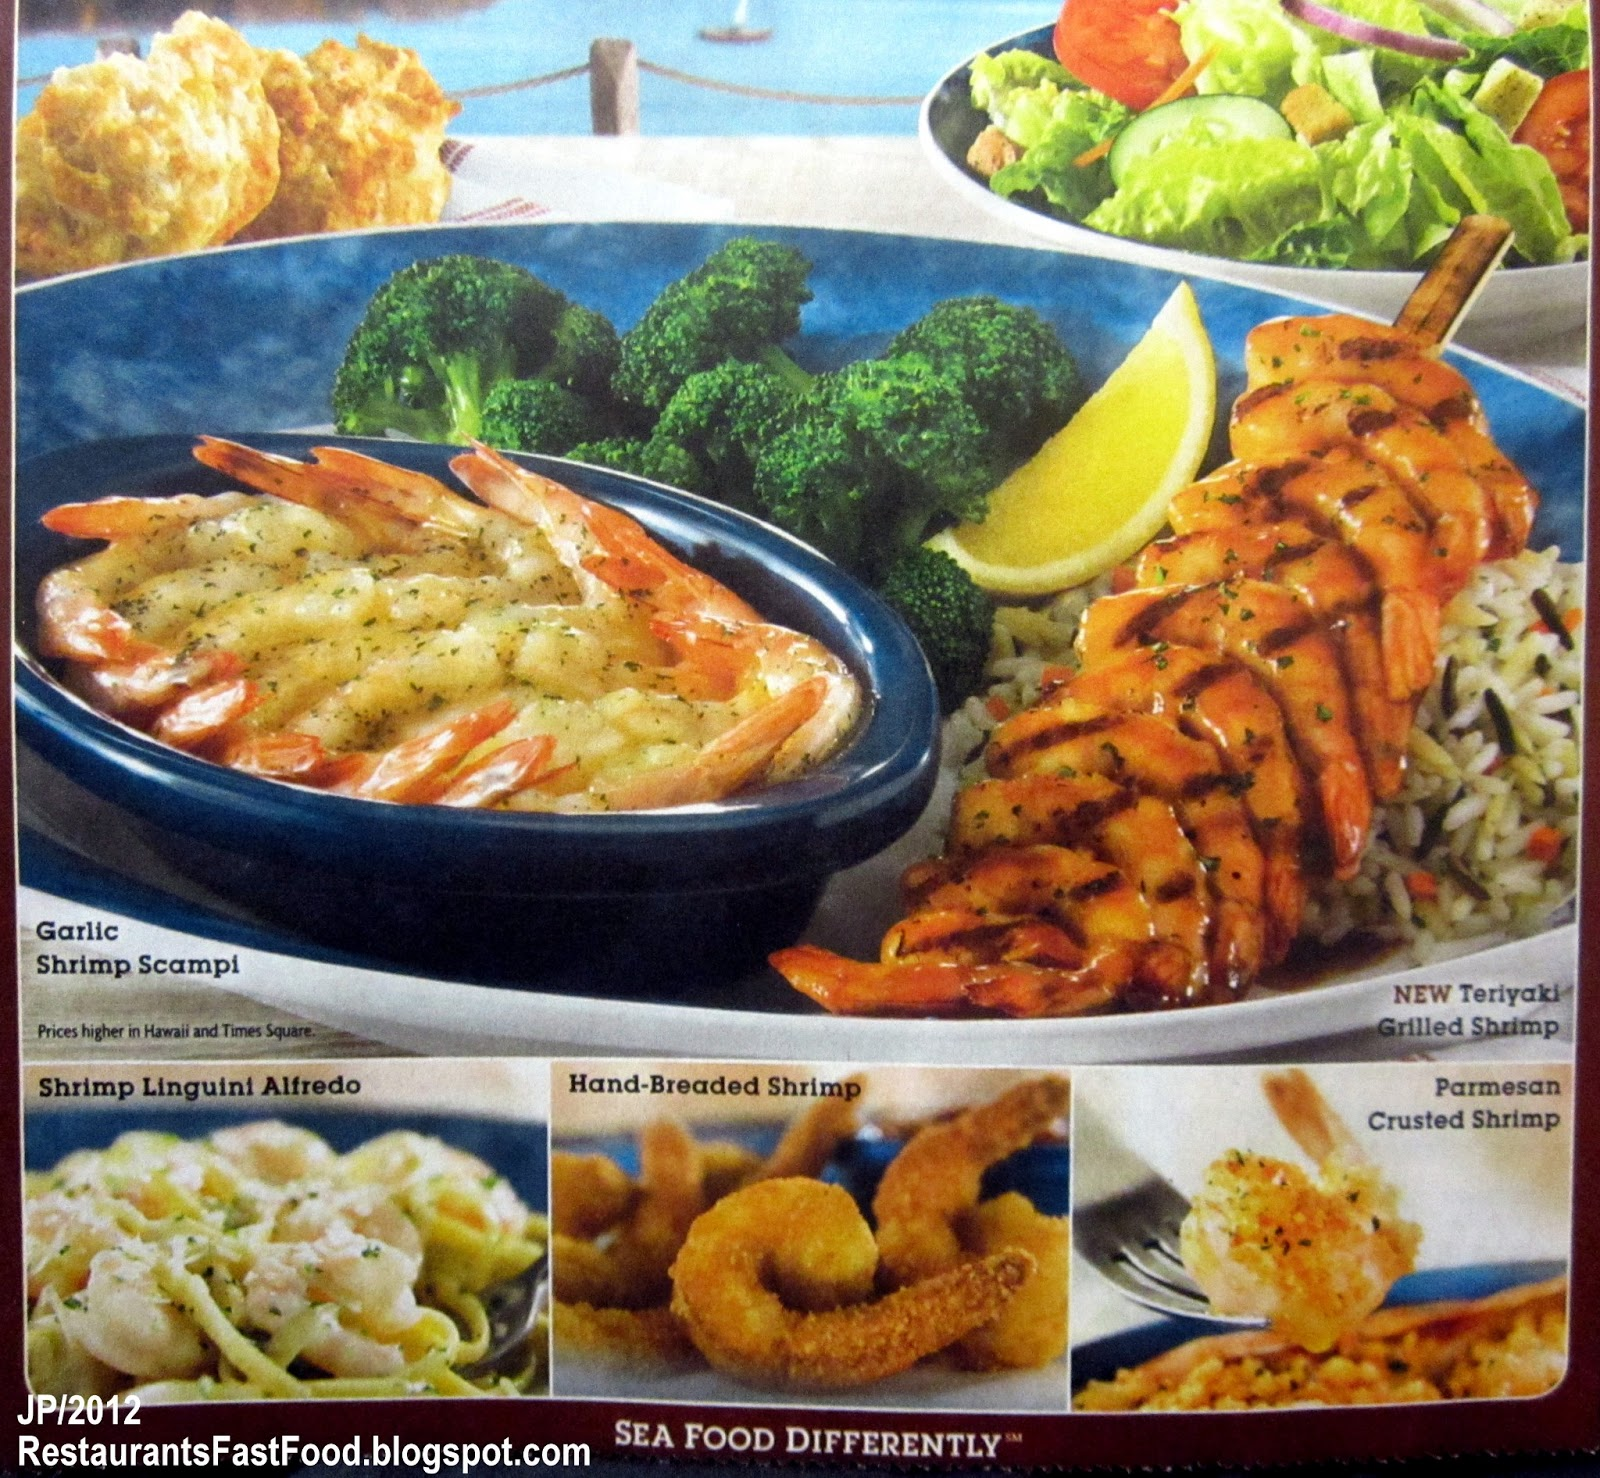 Red Lobster Seafood Restaurant Endless Shrimp Promotion All You Can Eat Fried Teriyaki Scampi Parmesan